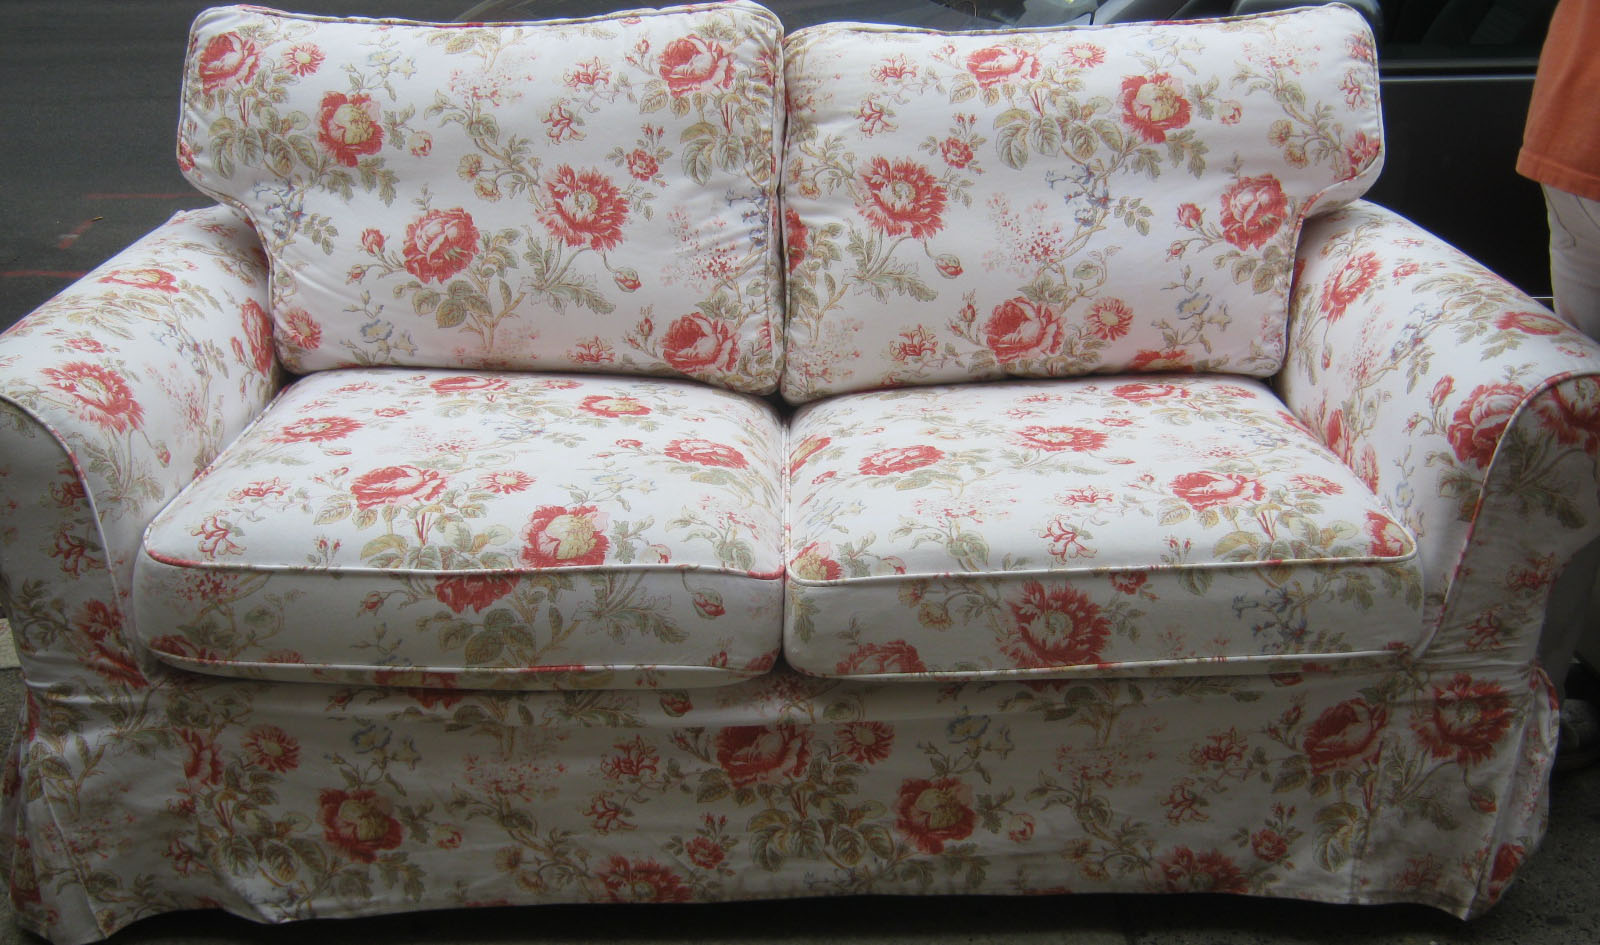 flower sofa covers beds perth uk uhuru furniture and collectibles floral loveseat